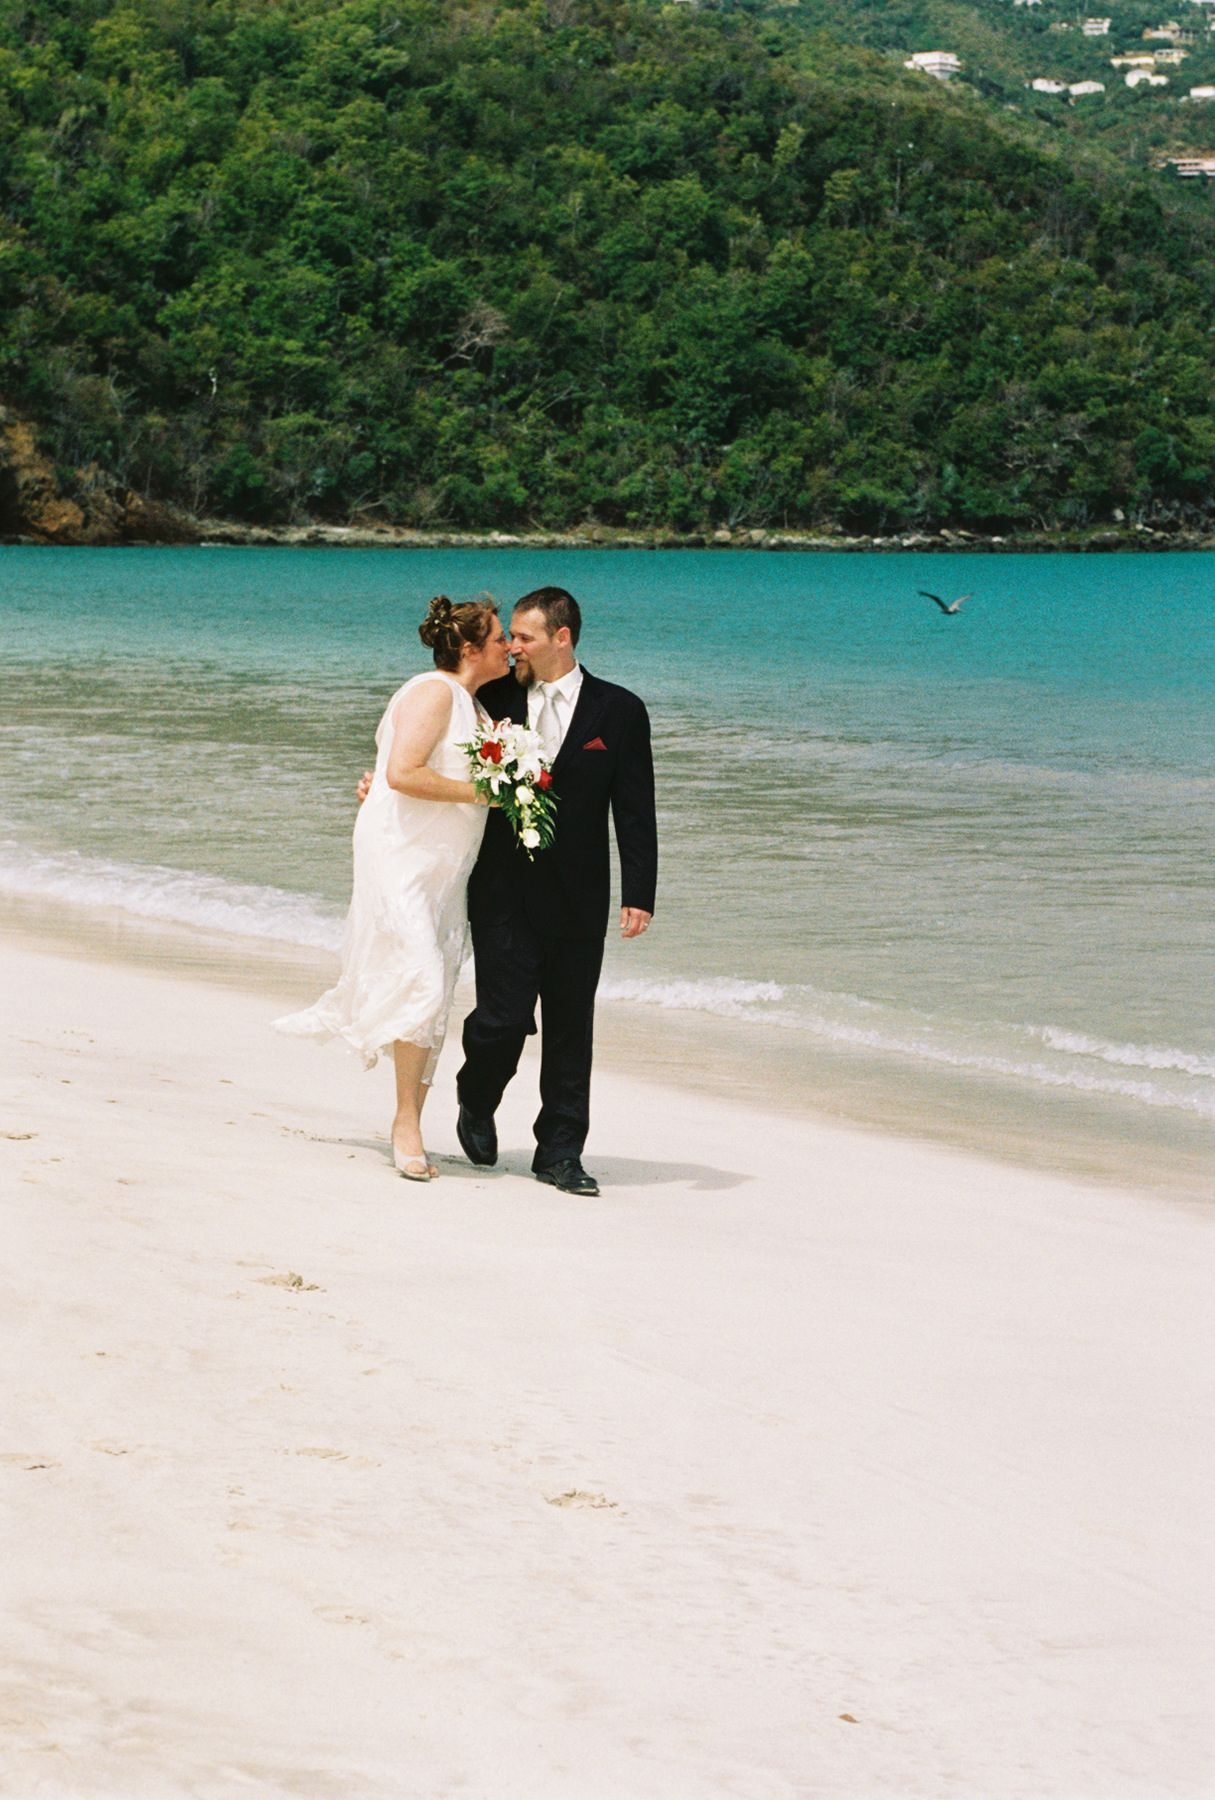 Heart Shaped Beach Magen S Bay St Thomas Usvi Weddings The Island Way